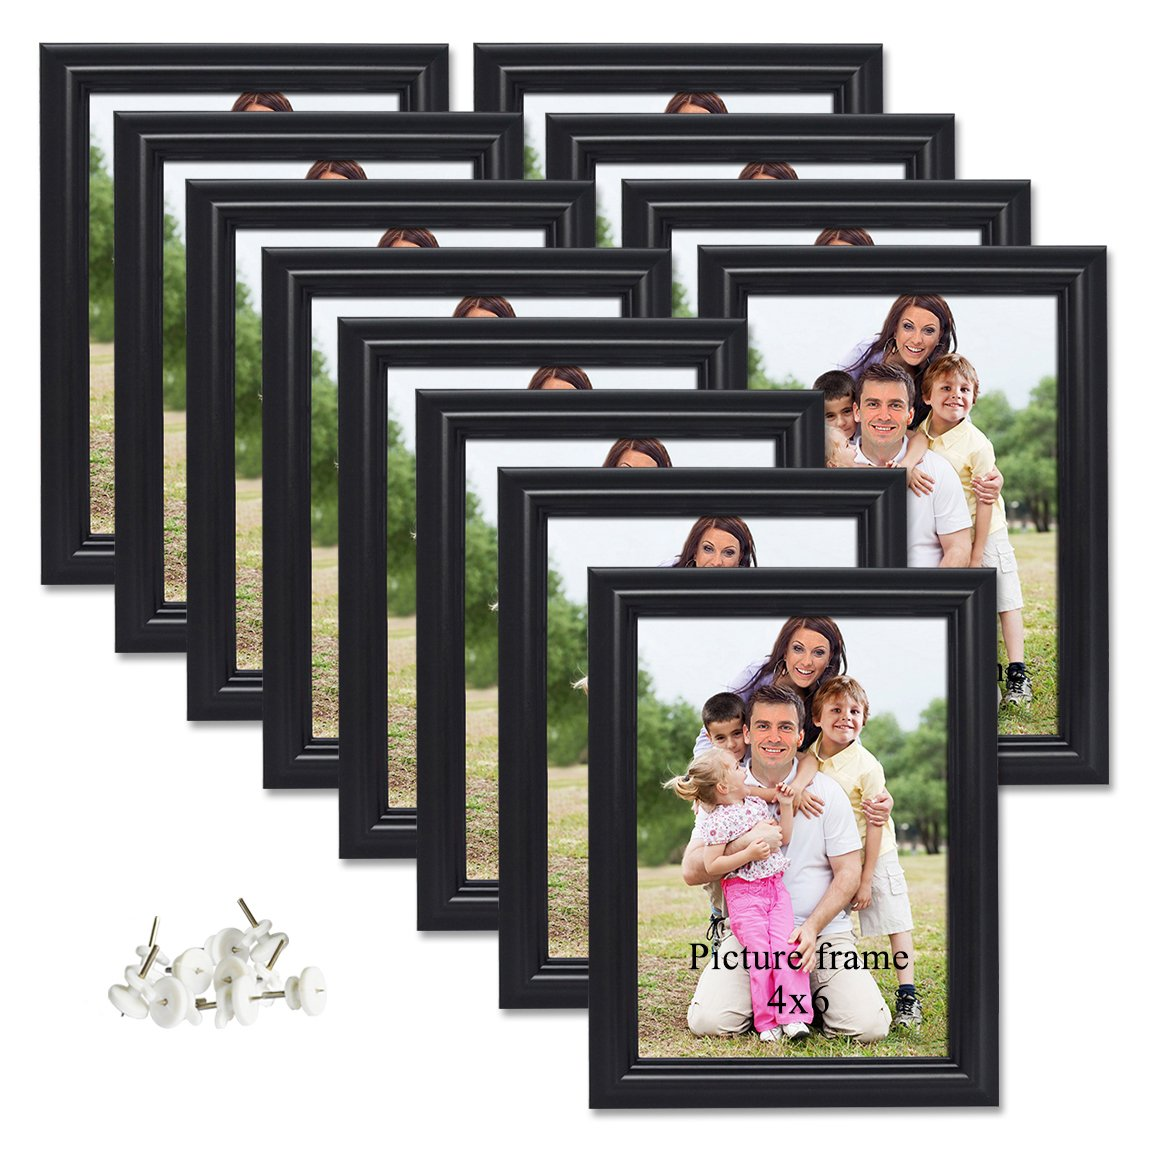 PETAFLOP 4x6 Picture Frame Wall and Tabletop Photo Frames, 12 pcs CH180316A